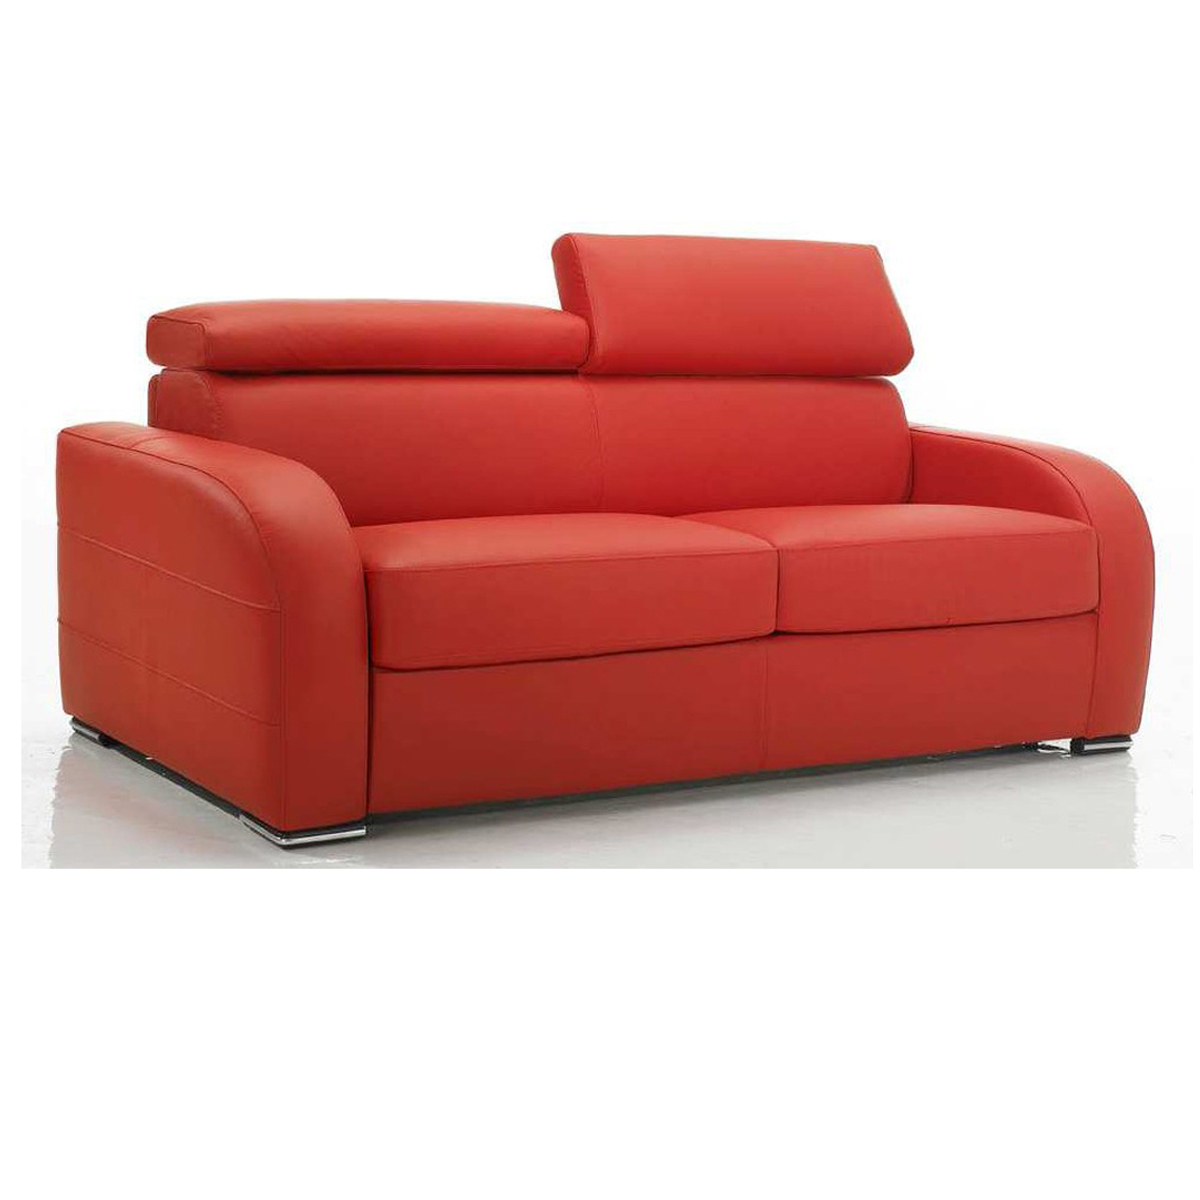 Canap convertible en stock royal sofa id e de canap for Canape h et h